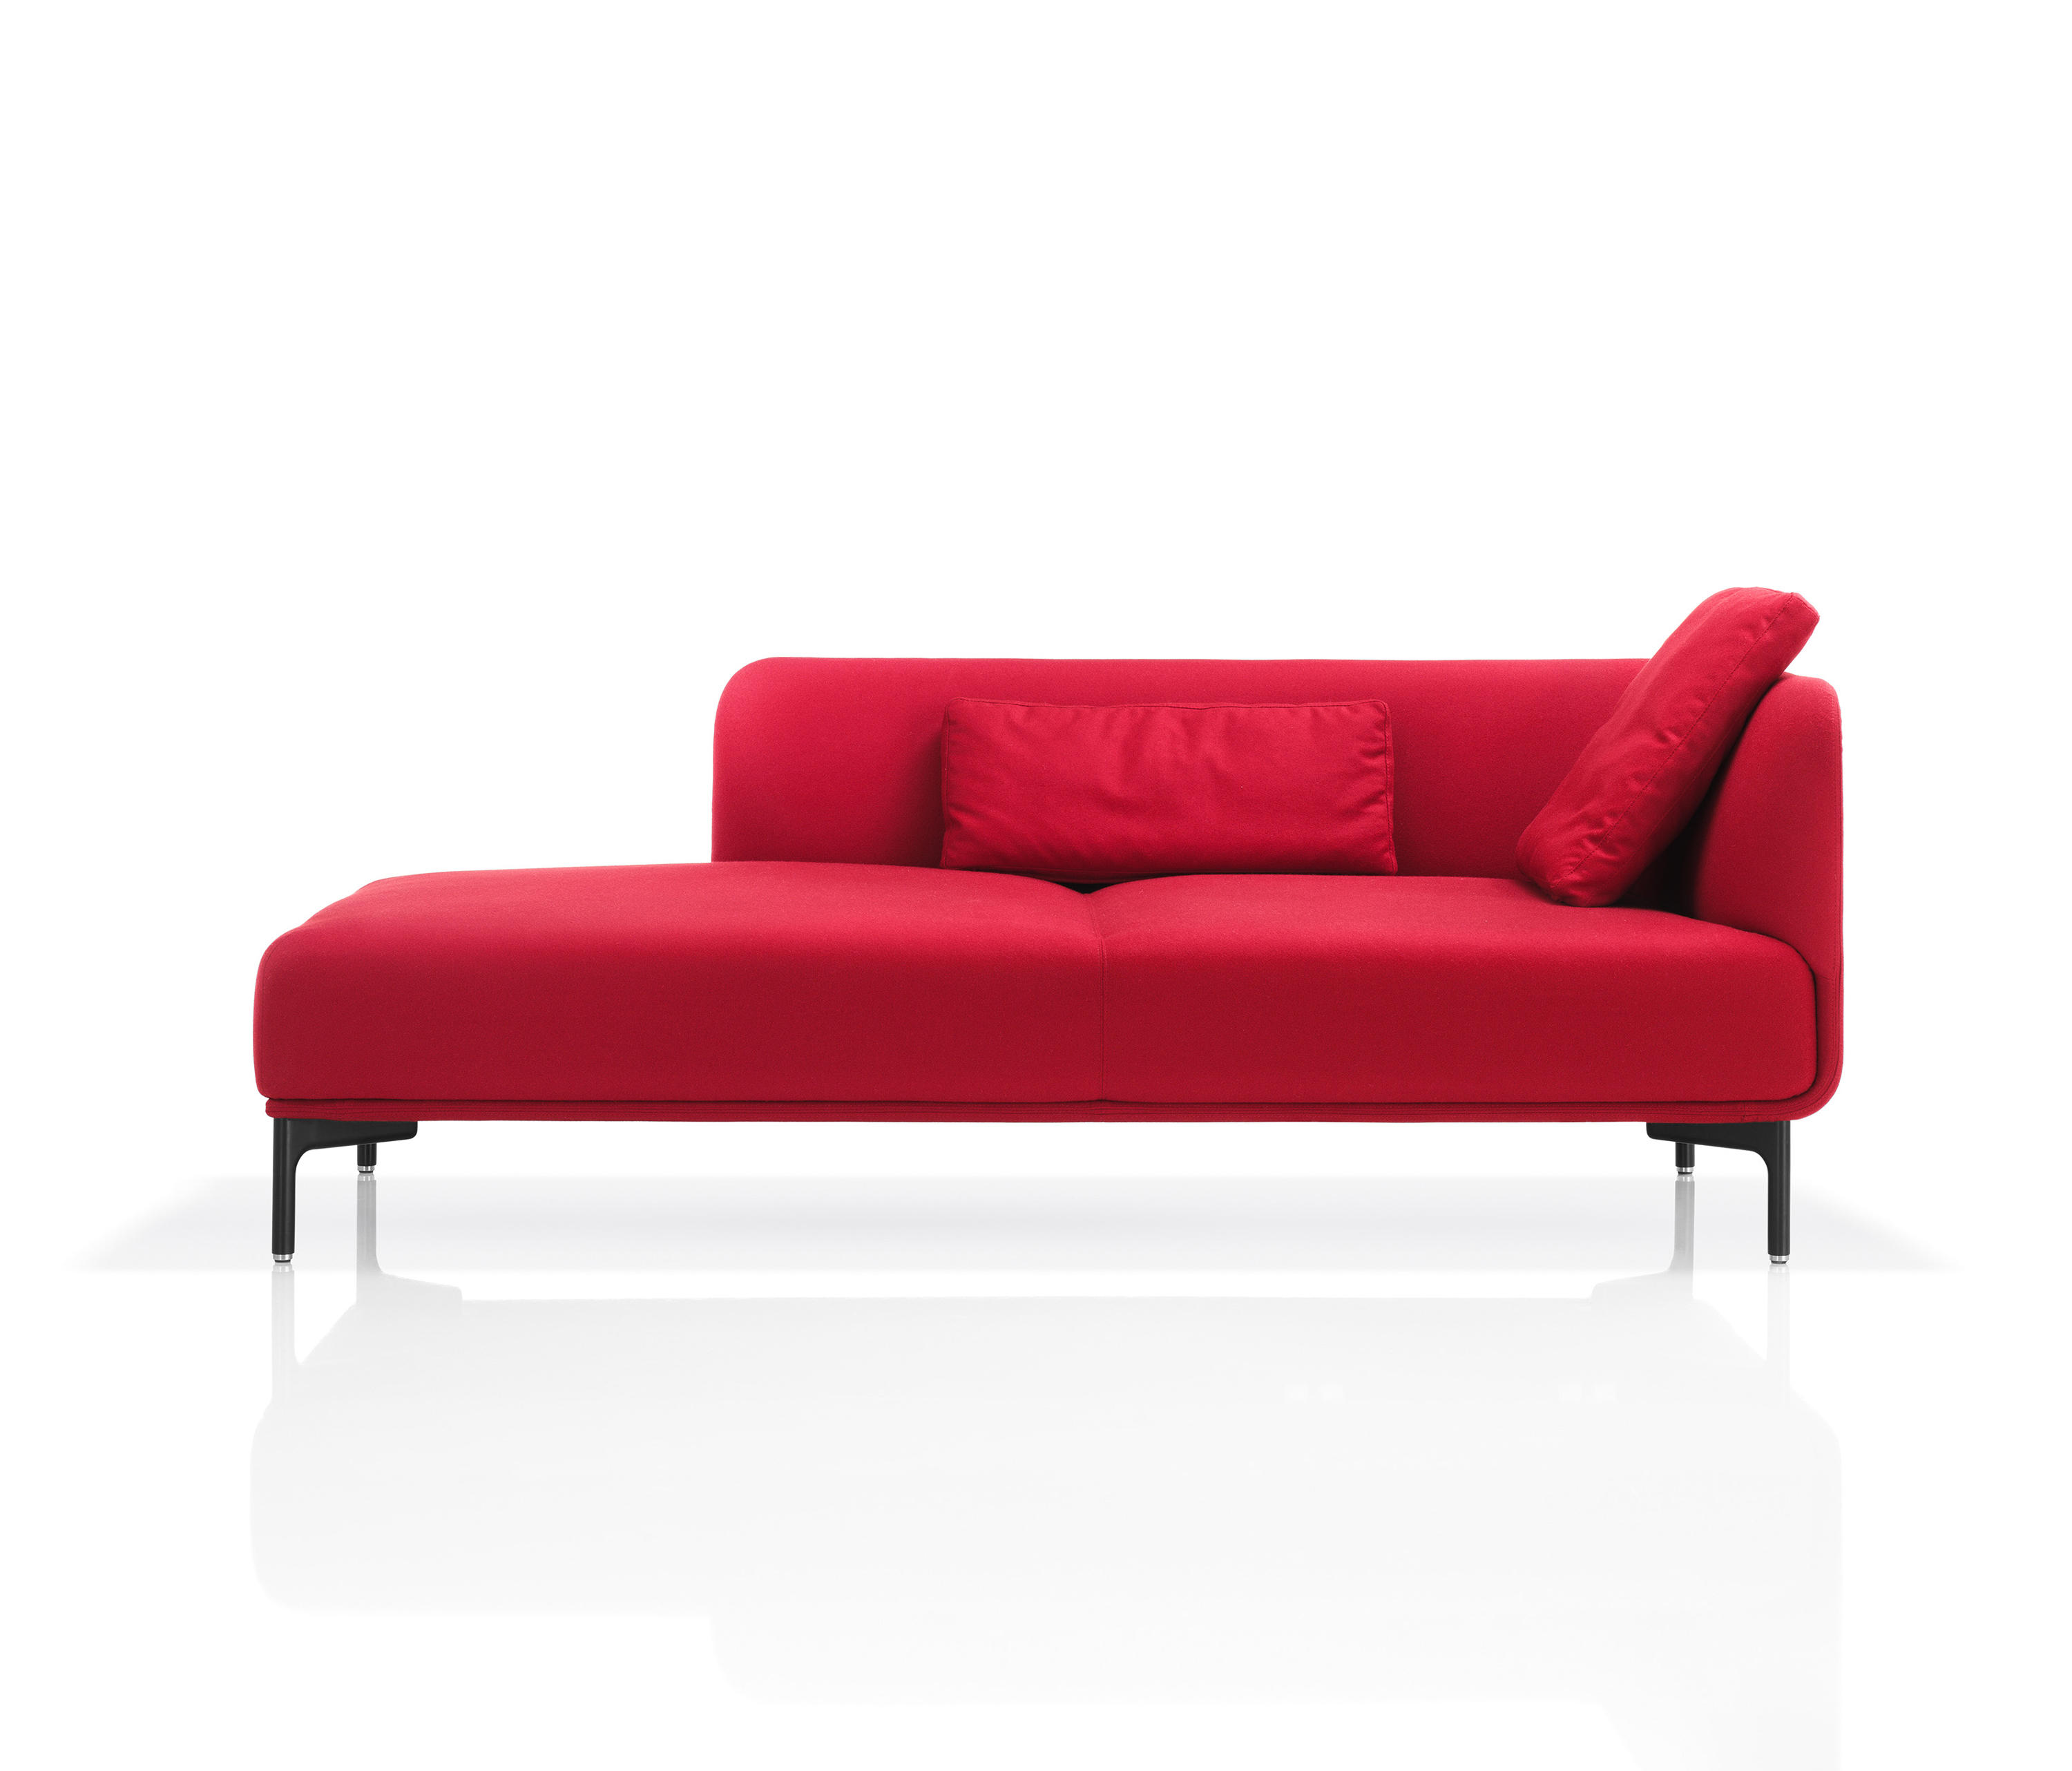 Chaiselongue Recamiere Liv Chaiselounge Recamieres From Wittmann Architonic